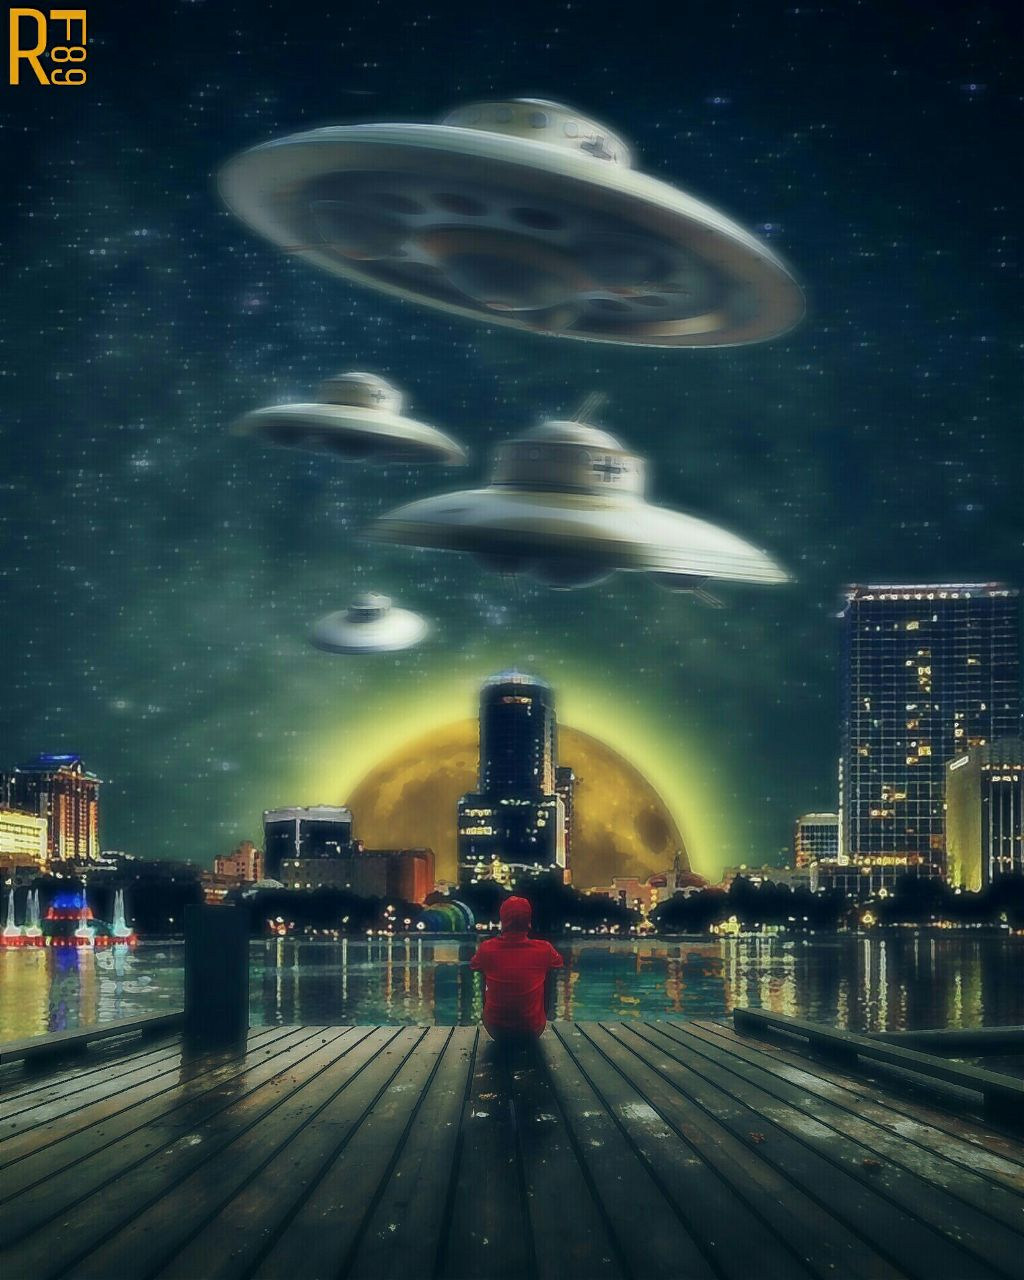 THIS IS THE END  @freetoedit pic edited by me ✌  #editstepbystep #manipulation #ufo #madewithpicsart #rf89